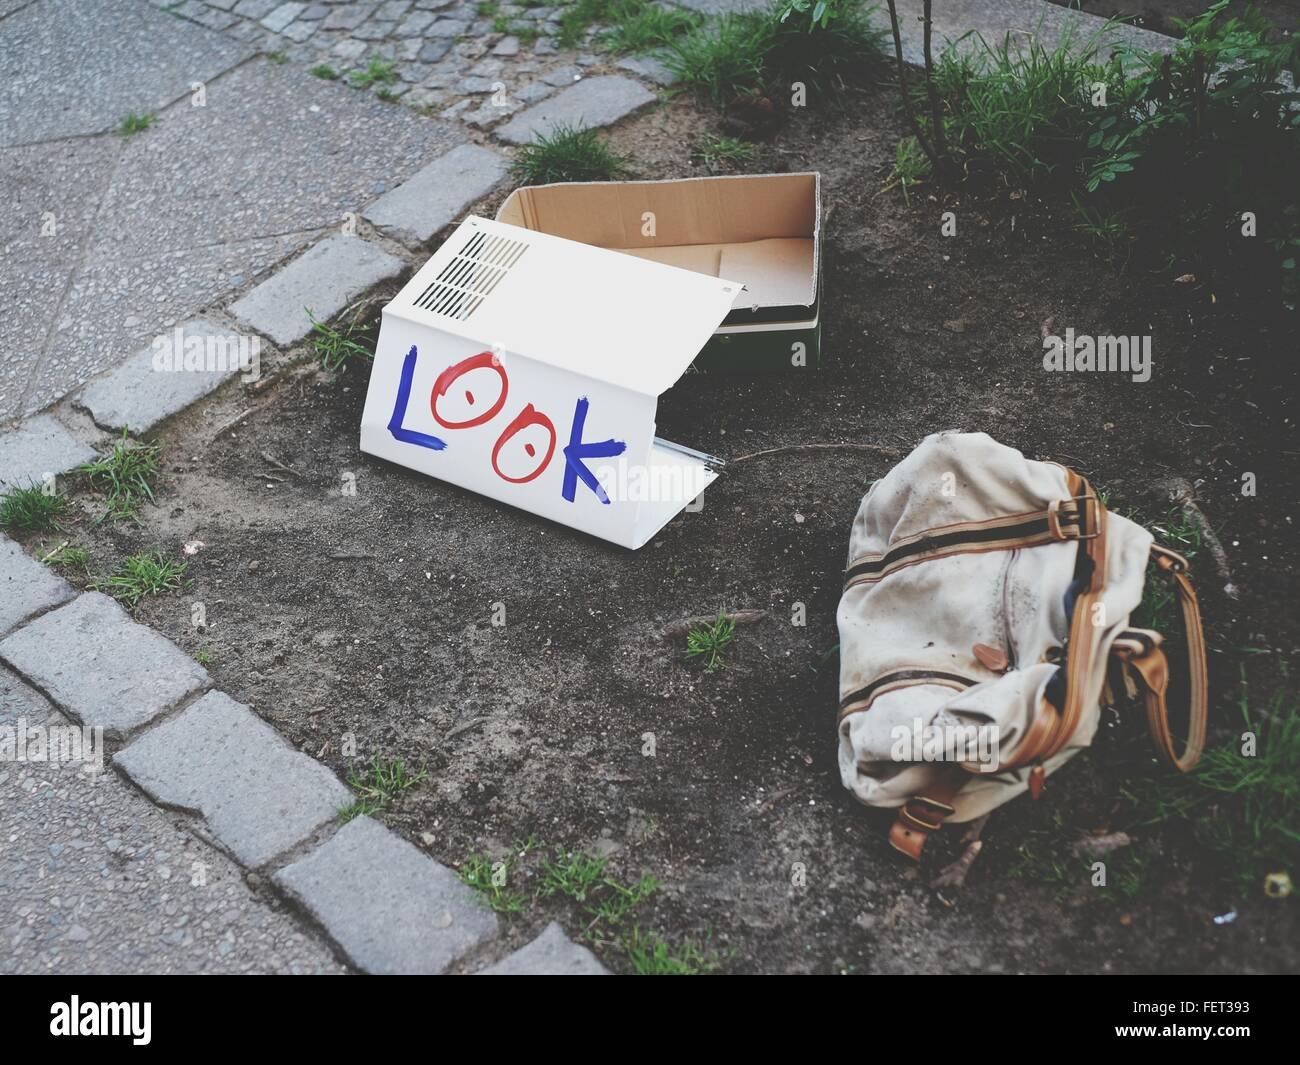 Look Written On Cardboard Paper By Abandoned Bag - Stock Image